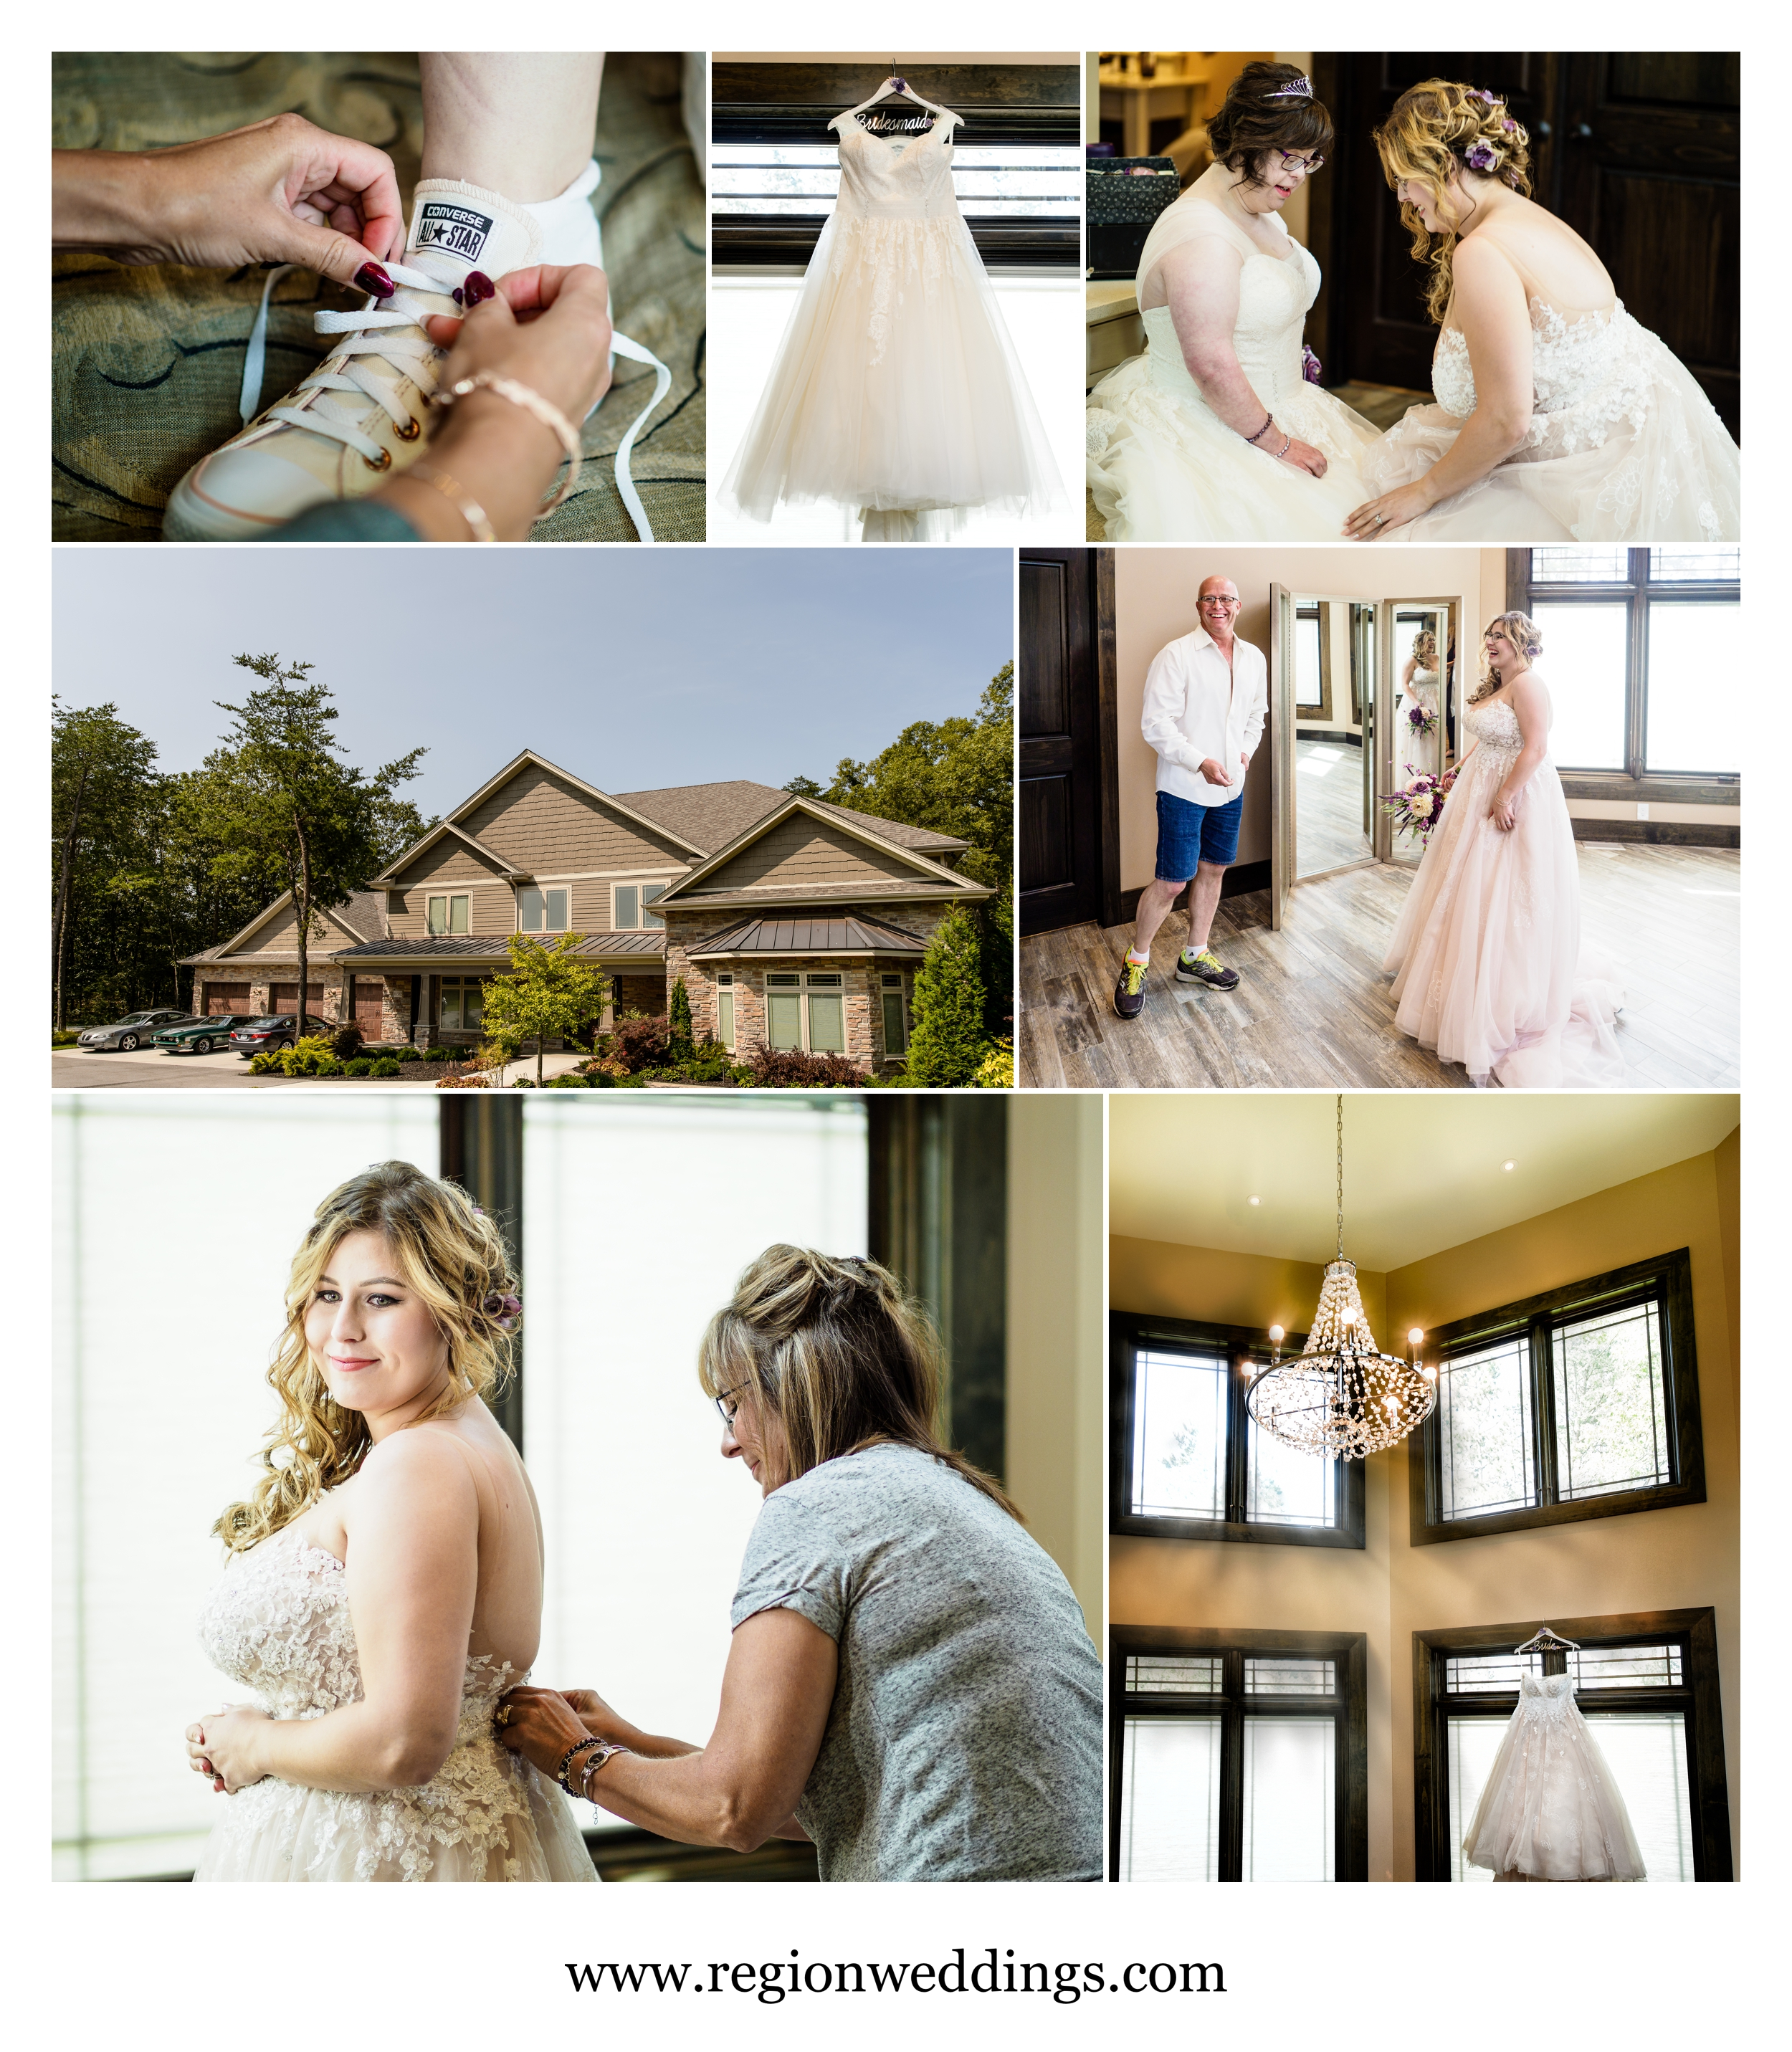 Bride getting ready at the bridal house at The Pavilion at Sandy Pines.